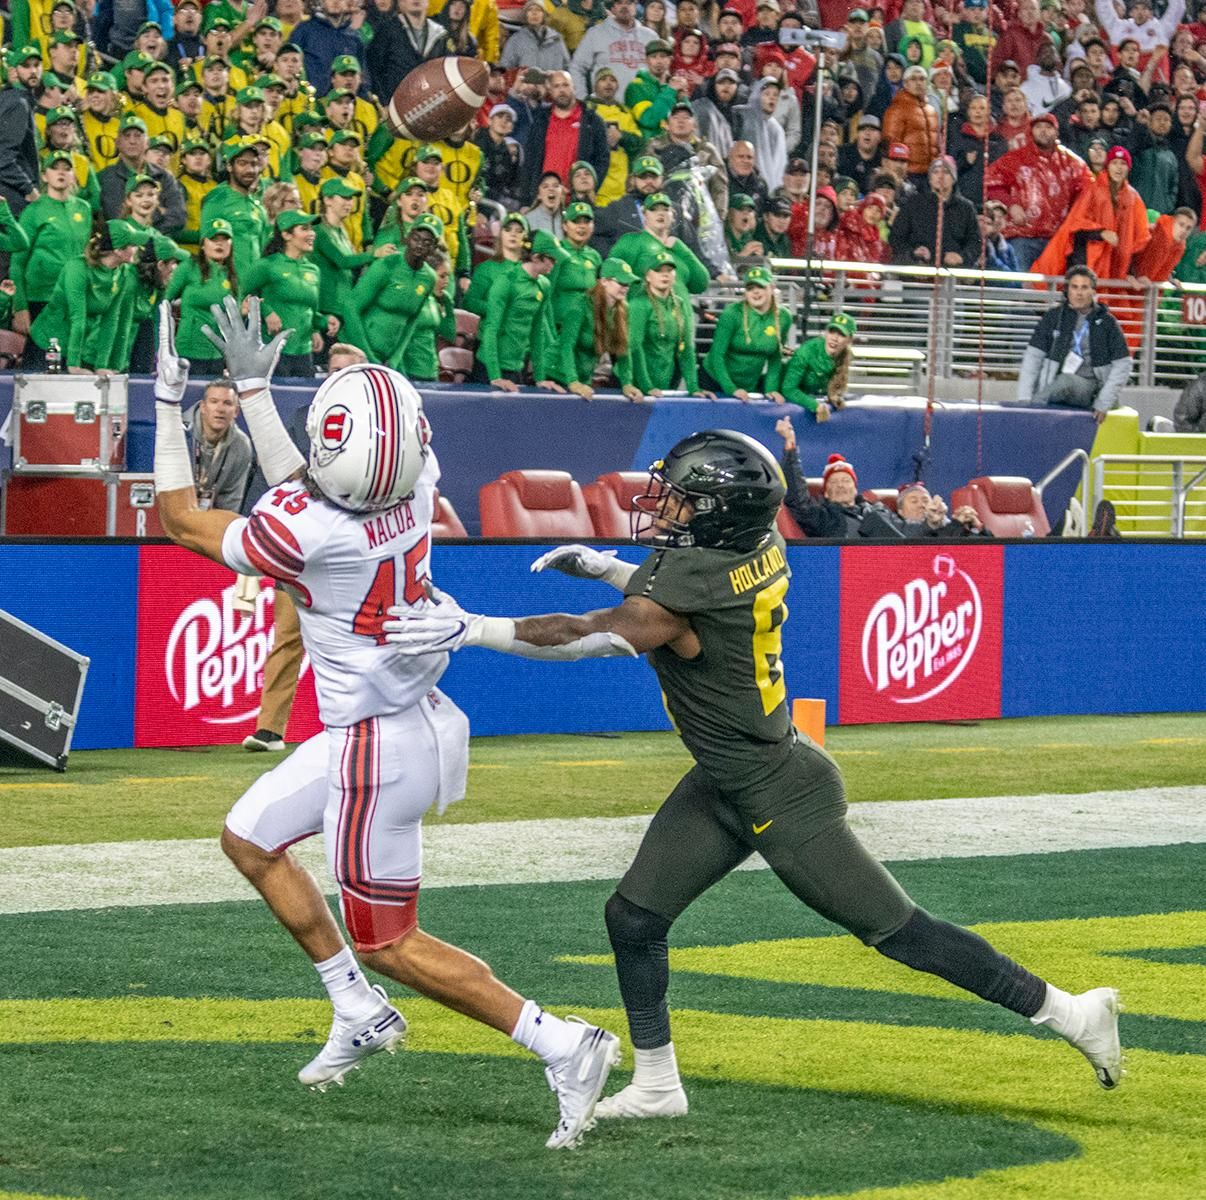 Utah's wide receiver Samsom Nacua, #45, catches touchdown pass attempt by quarterback Tyler Huntley, #1, with Oregon's nickle linebacker Jevon Holland, #8, defending.  The University of Oregon Ducks defeated the University of Utah Utes 37-15 for the Pac 12 Championship Friday night at Levi's Stadium. Oregon's running back CJ Verdell, #7, rushed for 203 all-purpose yard along with three touchdowns for the night. Verdell was named the games M-V-P for his performace. Oregon's safey Brady Breeze, #25, contributed 9 tackles and one interception. Oregon's defensive end Kayvon Thibodeaux, #5, sacked Utah's quarterback Tyler Huntly, #1, for a total of three times. Oregon's quarterback Justin Herbert, #10, passed for 193 yards with one touchdown. The Oregon Ducks will represent the Pac 12 for the upcoming Rose Bowl game in the new year. Photo by Jeffrey Price